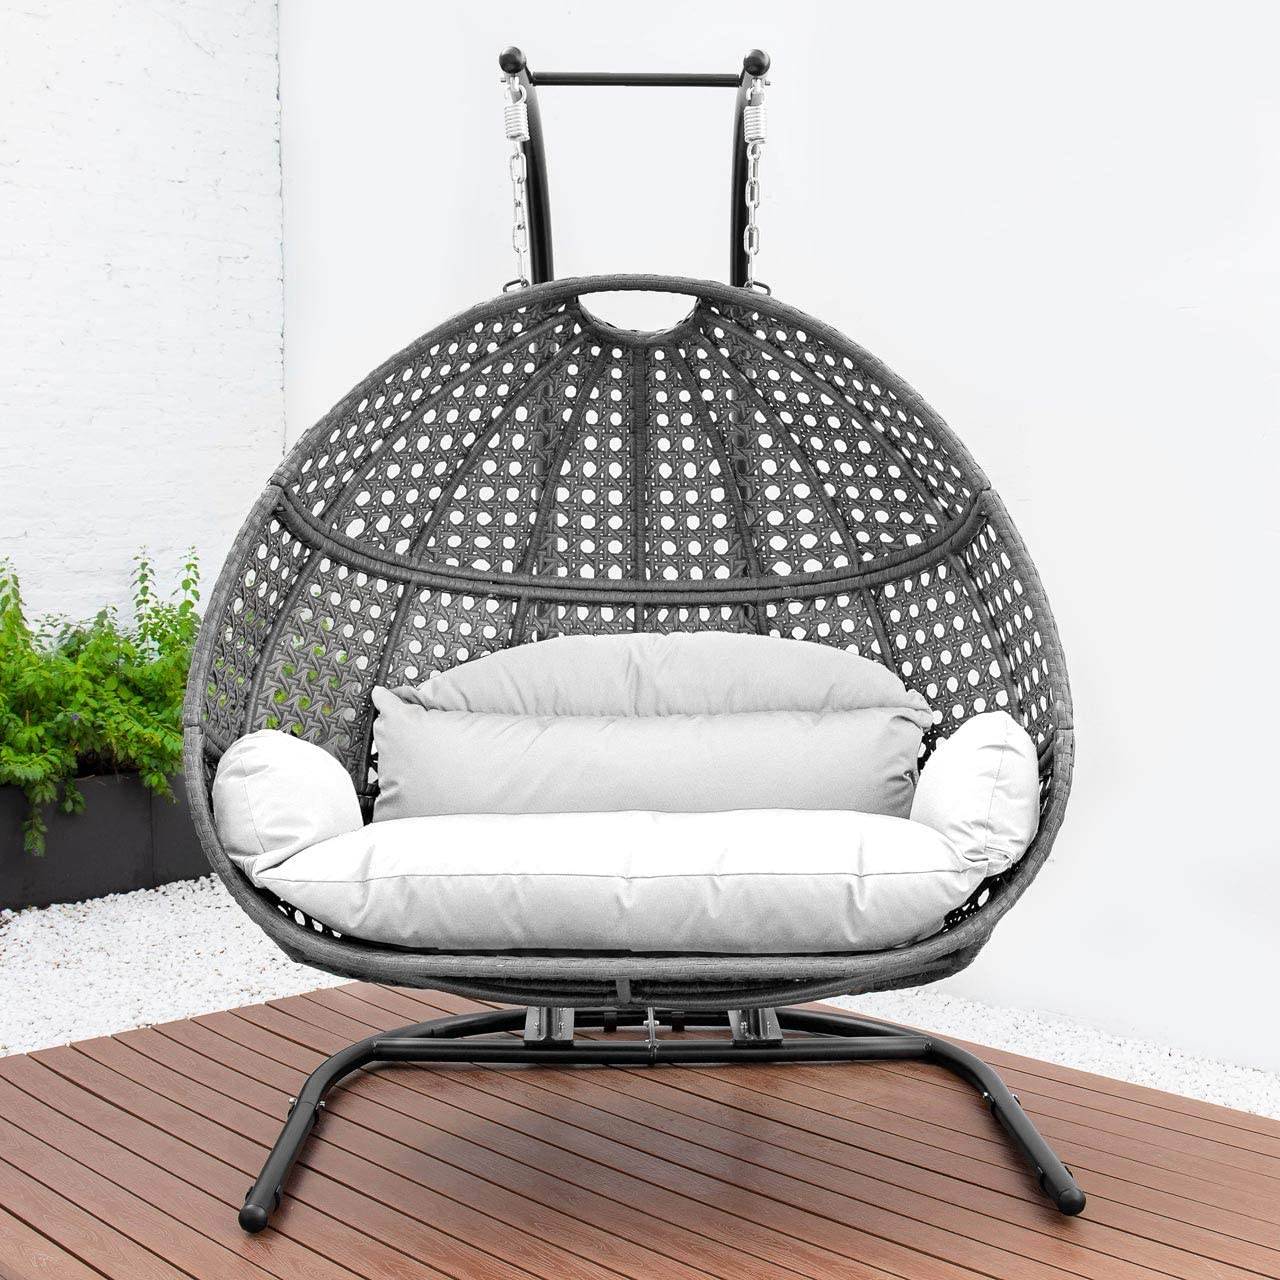 Double Swing Chair With Stand, Outdoor Swing Chair With Stand Canada